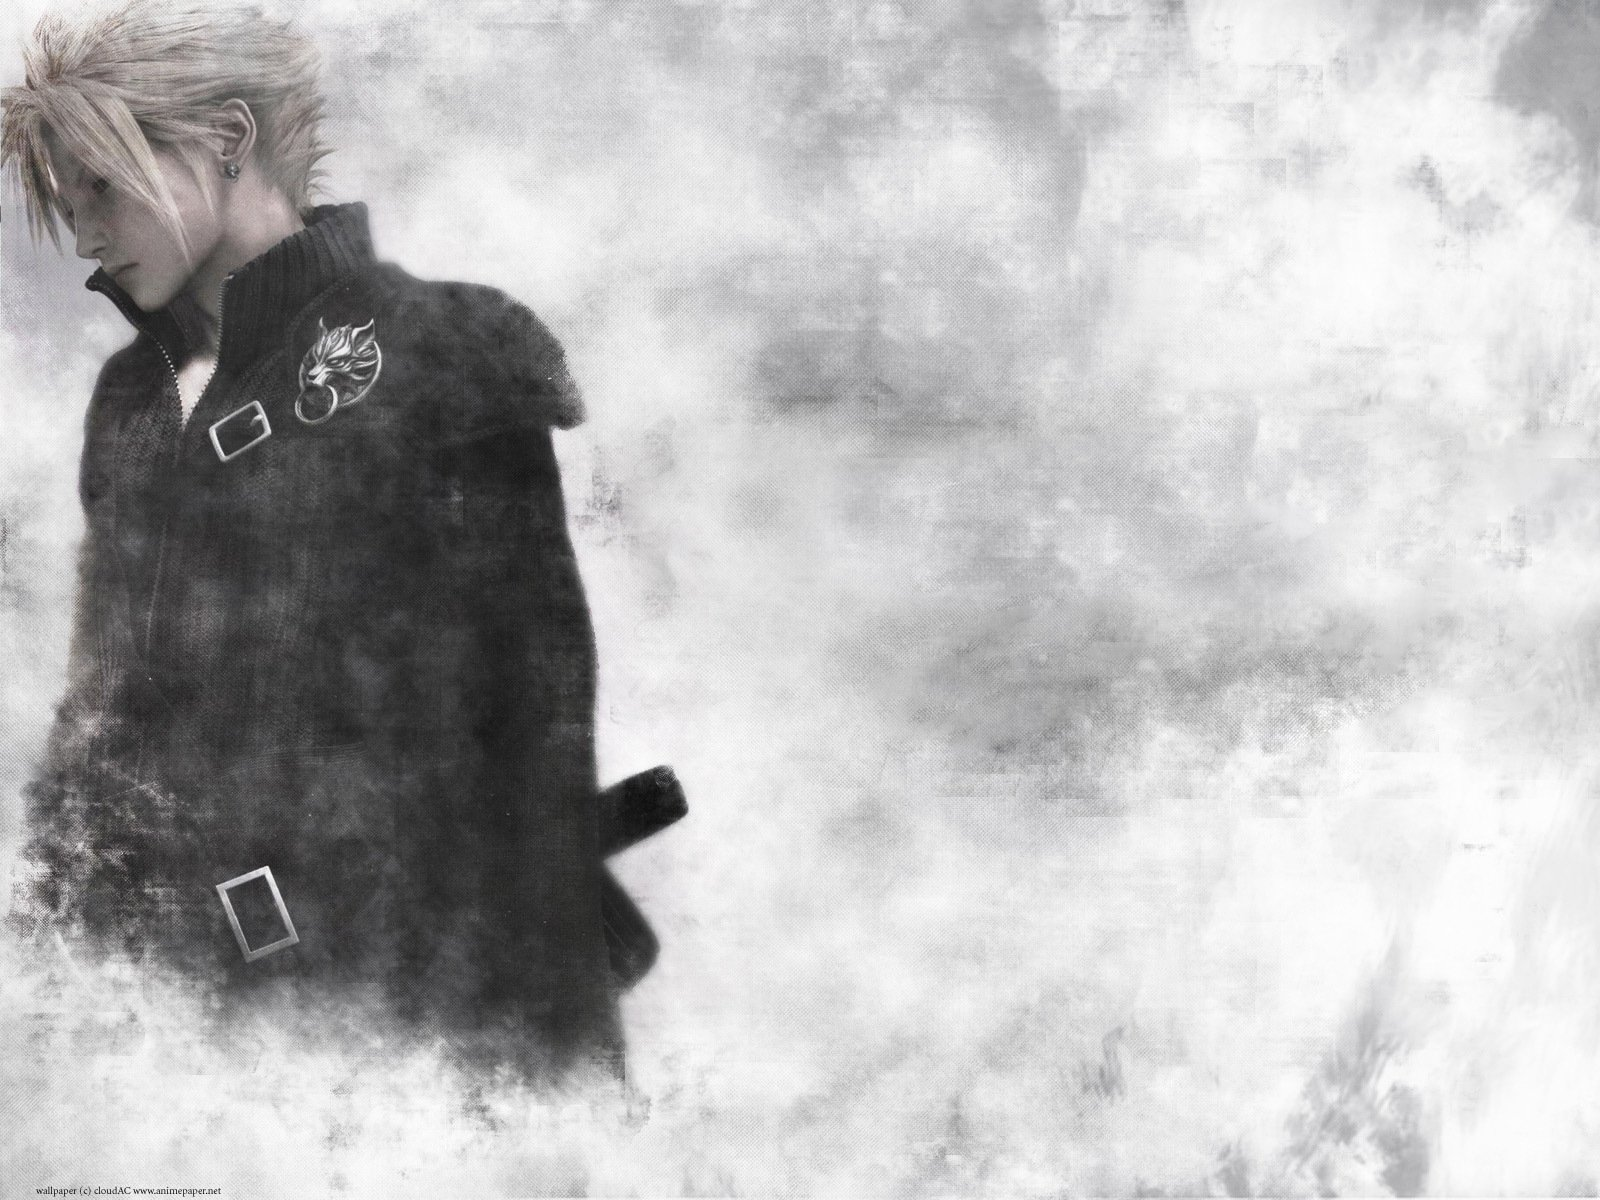 Cloud Strife images final fantasy 7 HD wallpaper and background photos 1600x1200